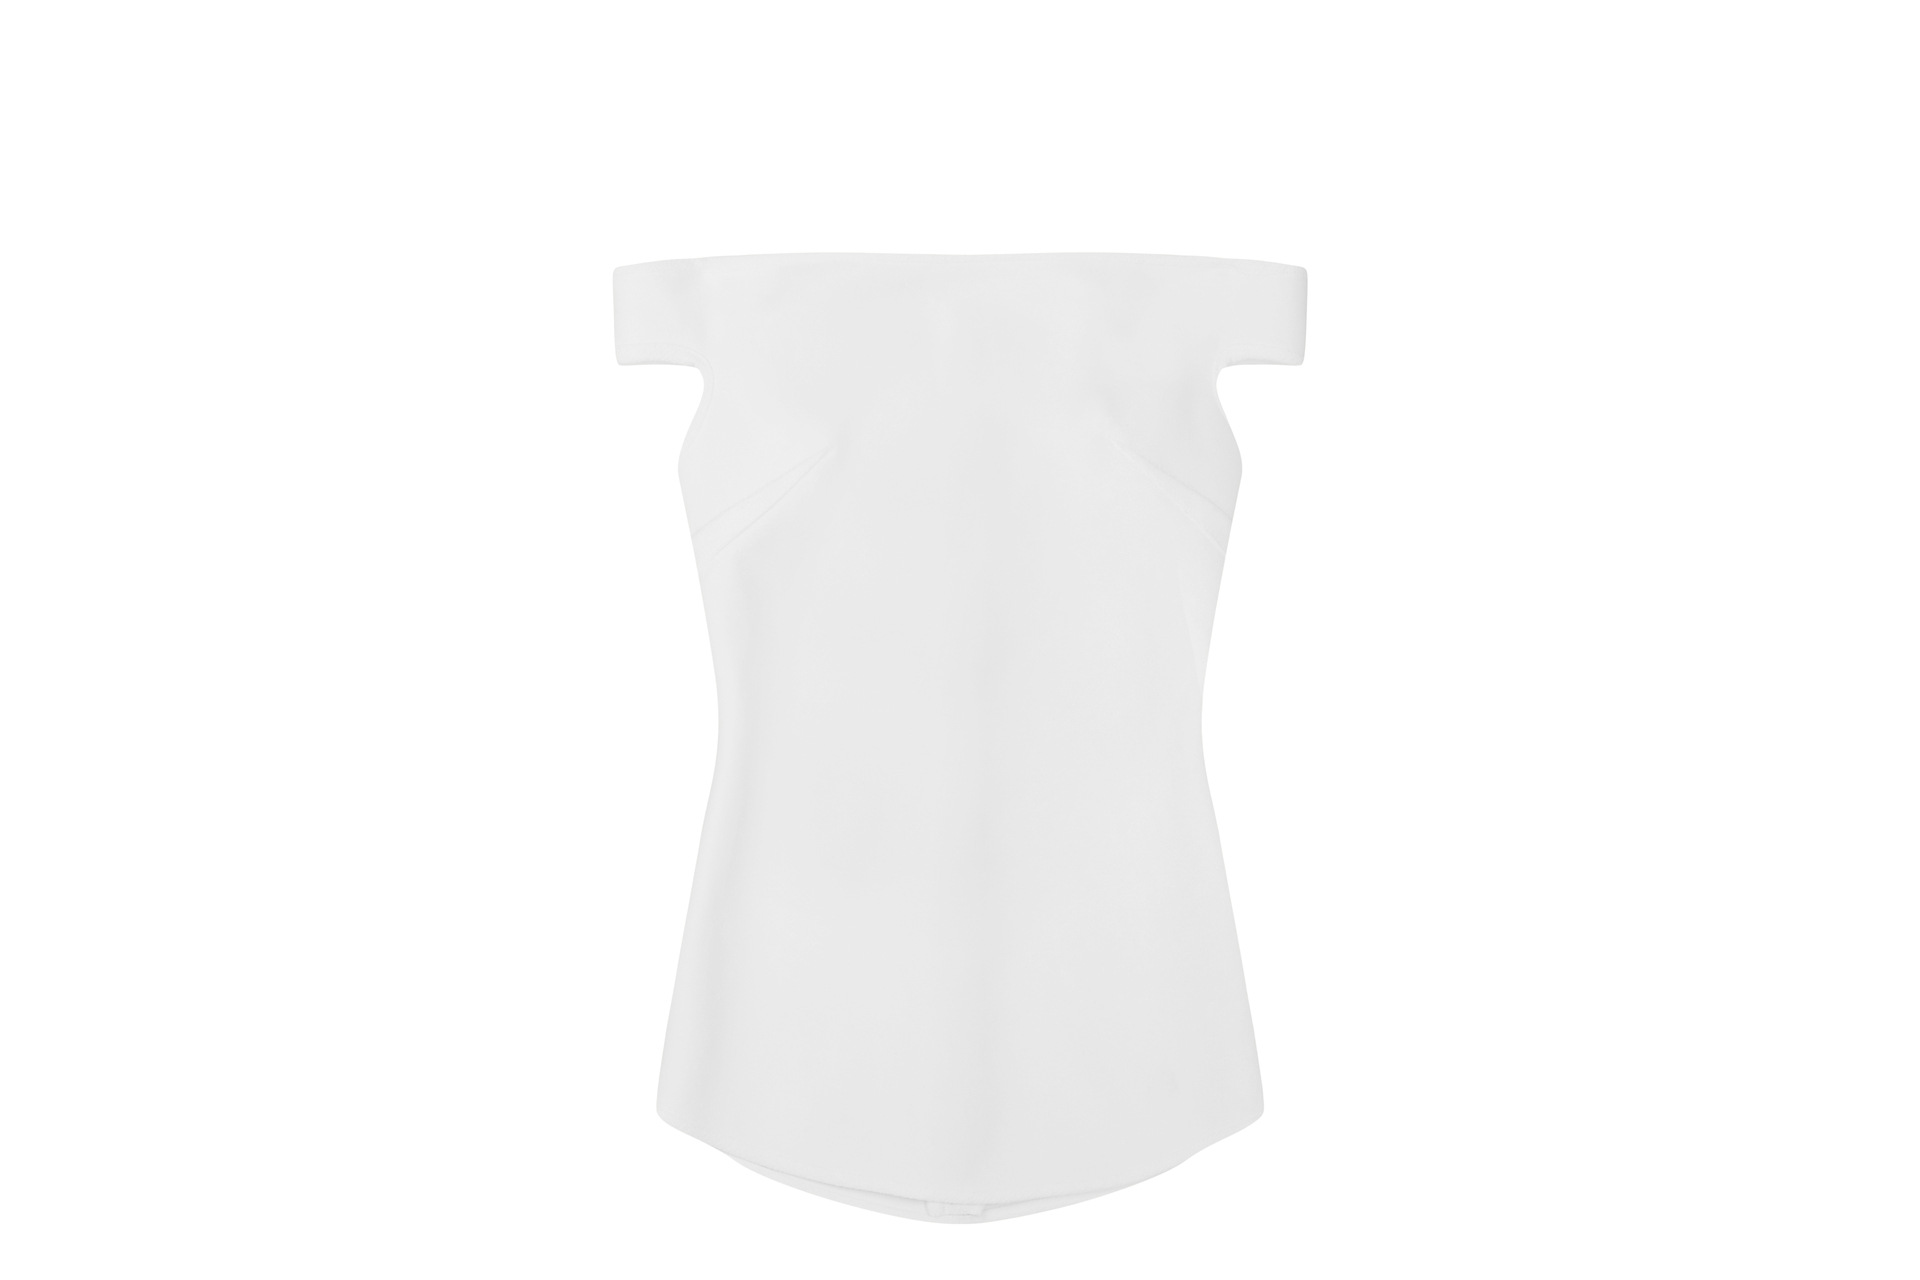 72dpi-239126956f-2.-BY-JOHNNY,-Bare-Shoulder-Structure-Top-White,-180,-www.byjohnny.com.au